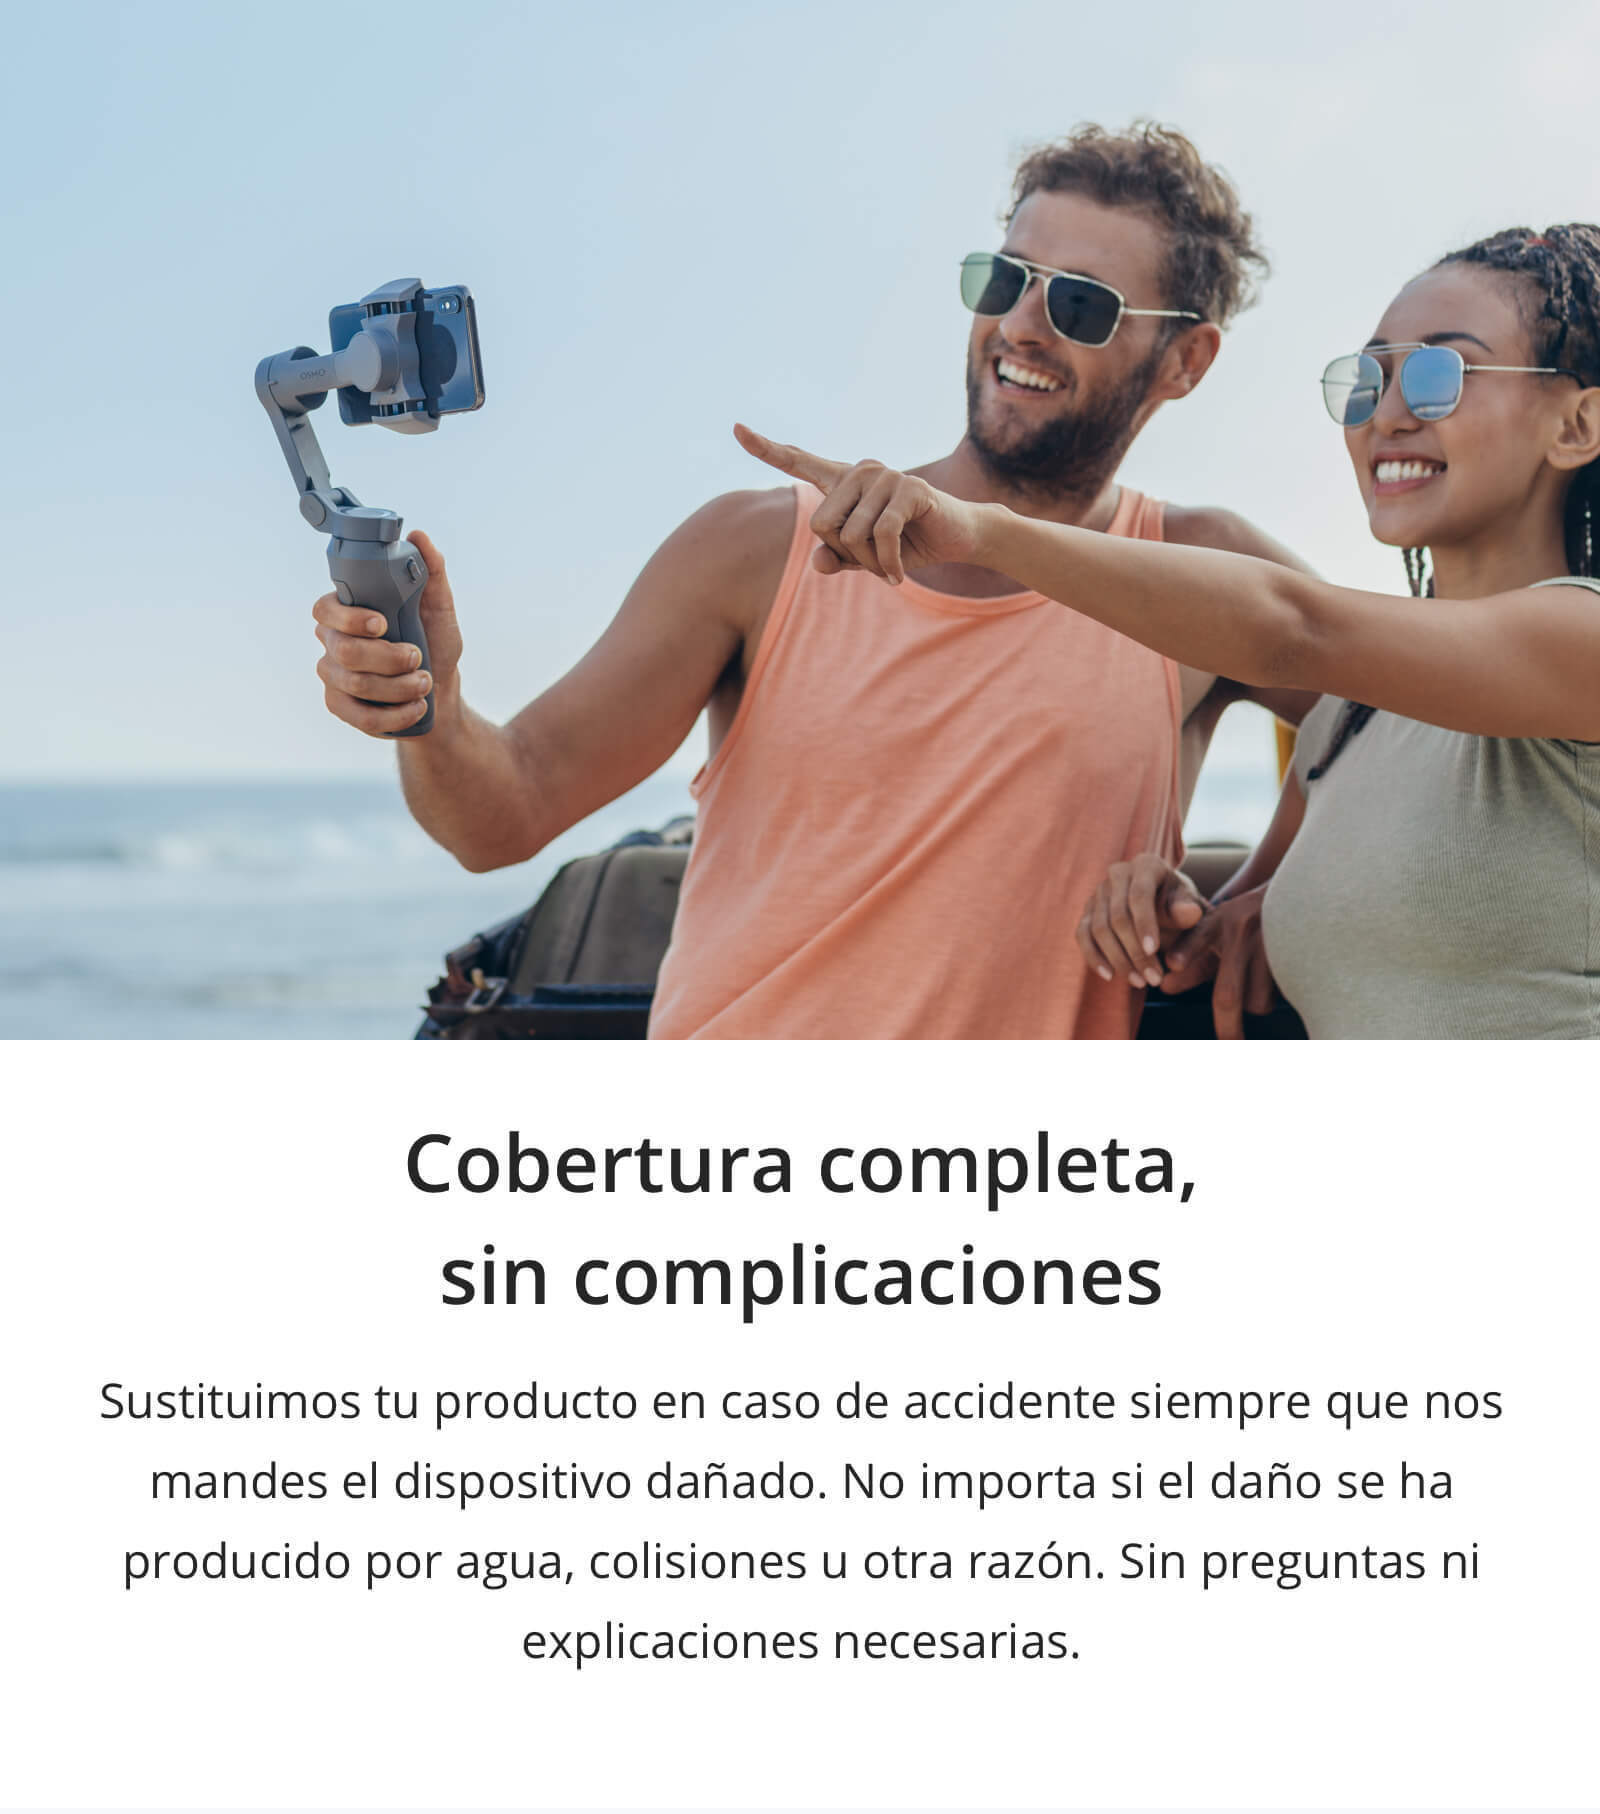 DJI_Care_Refresh_Osmo_Mobile_3_stockrc2